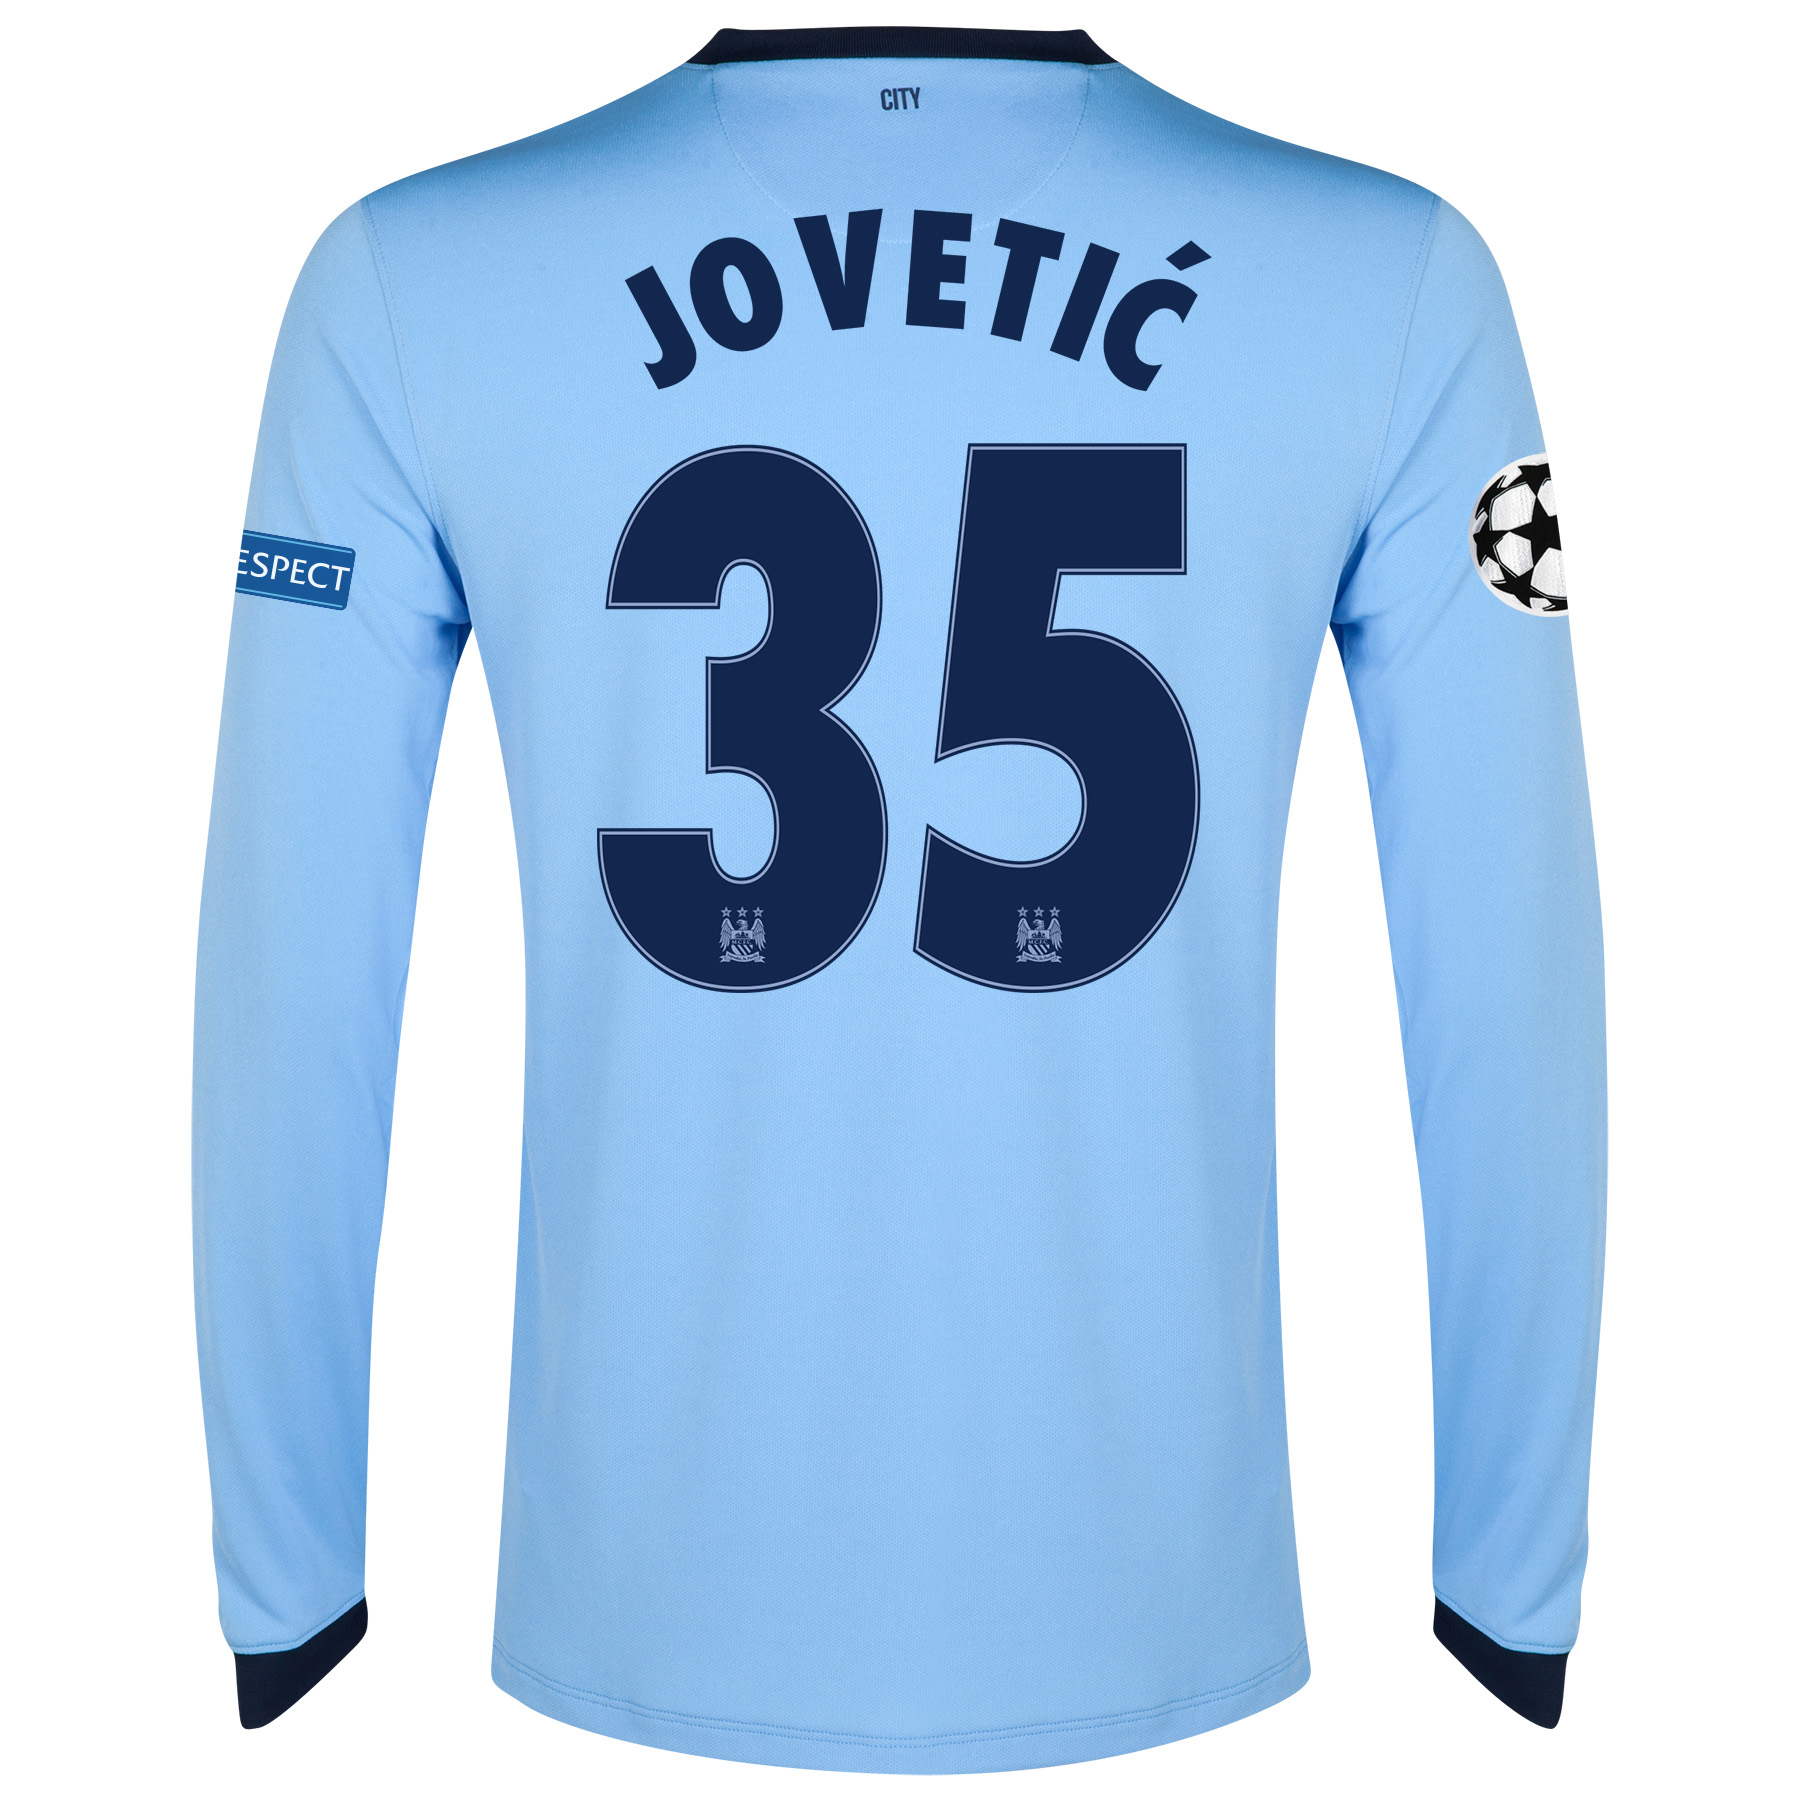 Manchester City UEFA Champions League Home Shirt 2014/15 - Long Sleeve Sky Blue with Jovetic 35 printing